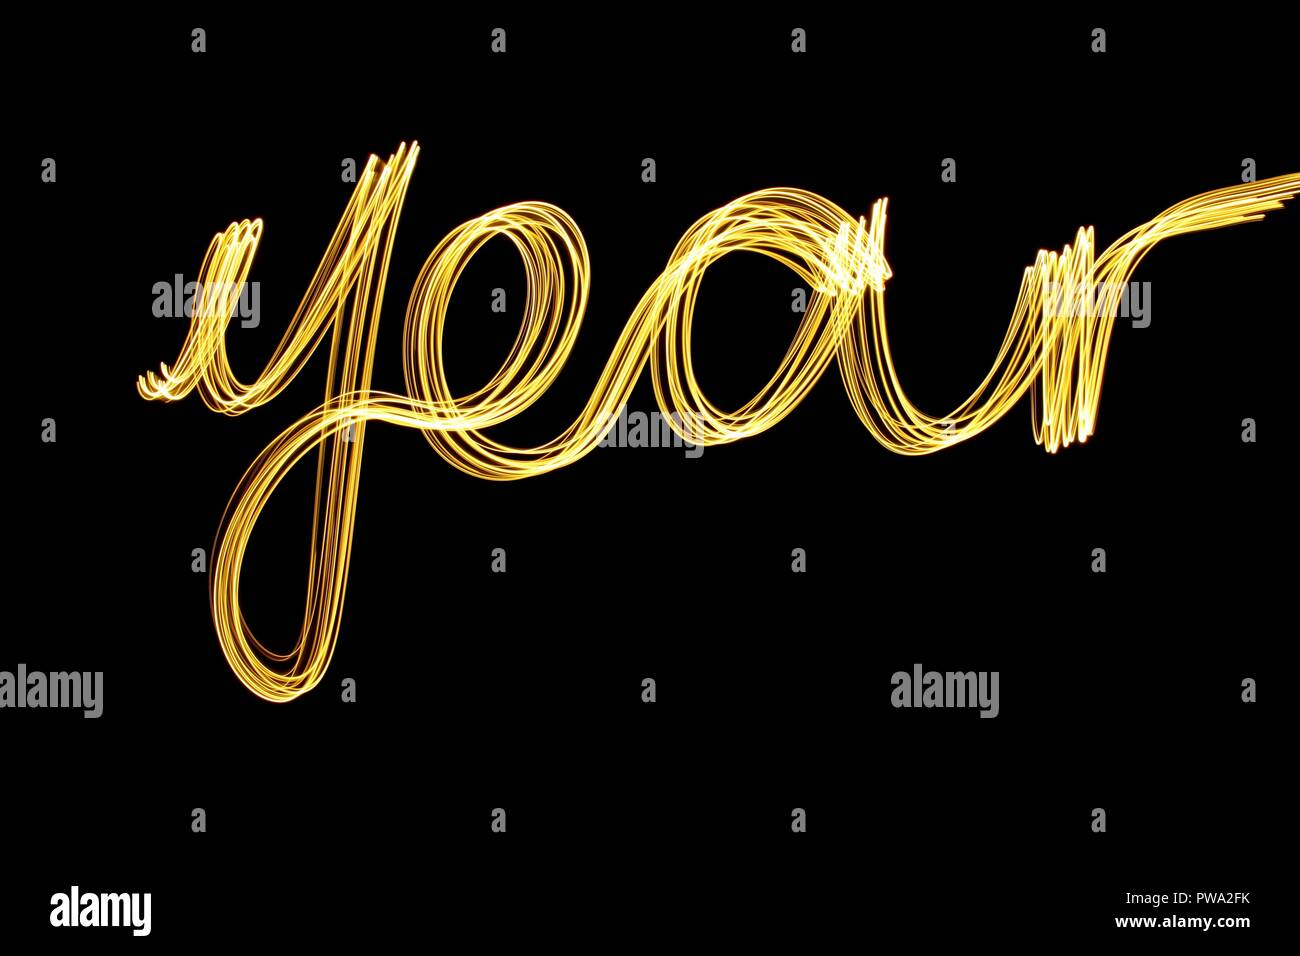 Metallic Gold Letters Stock Photos & Metallic Gold Letters